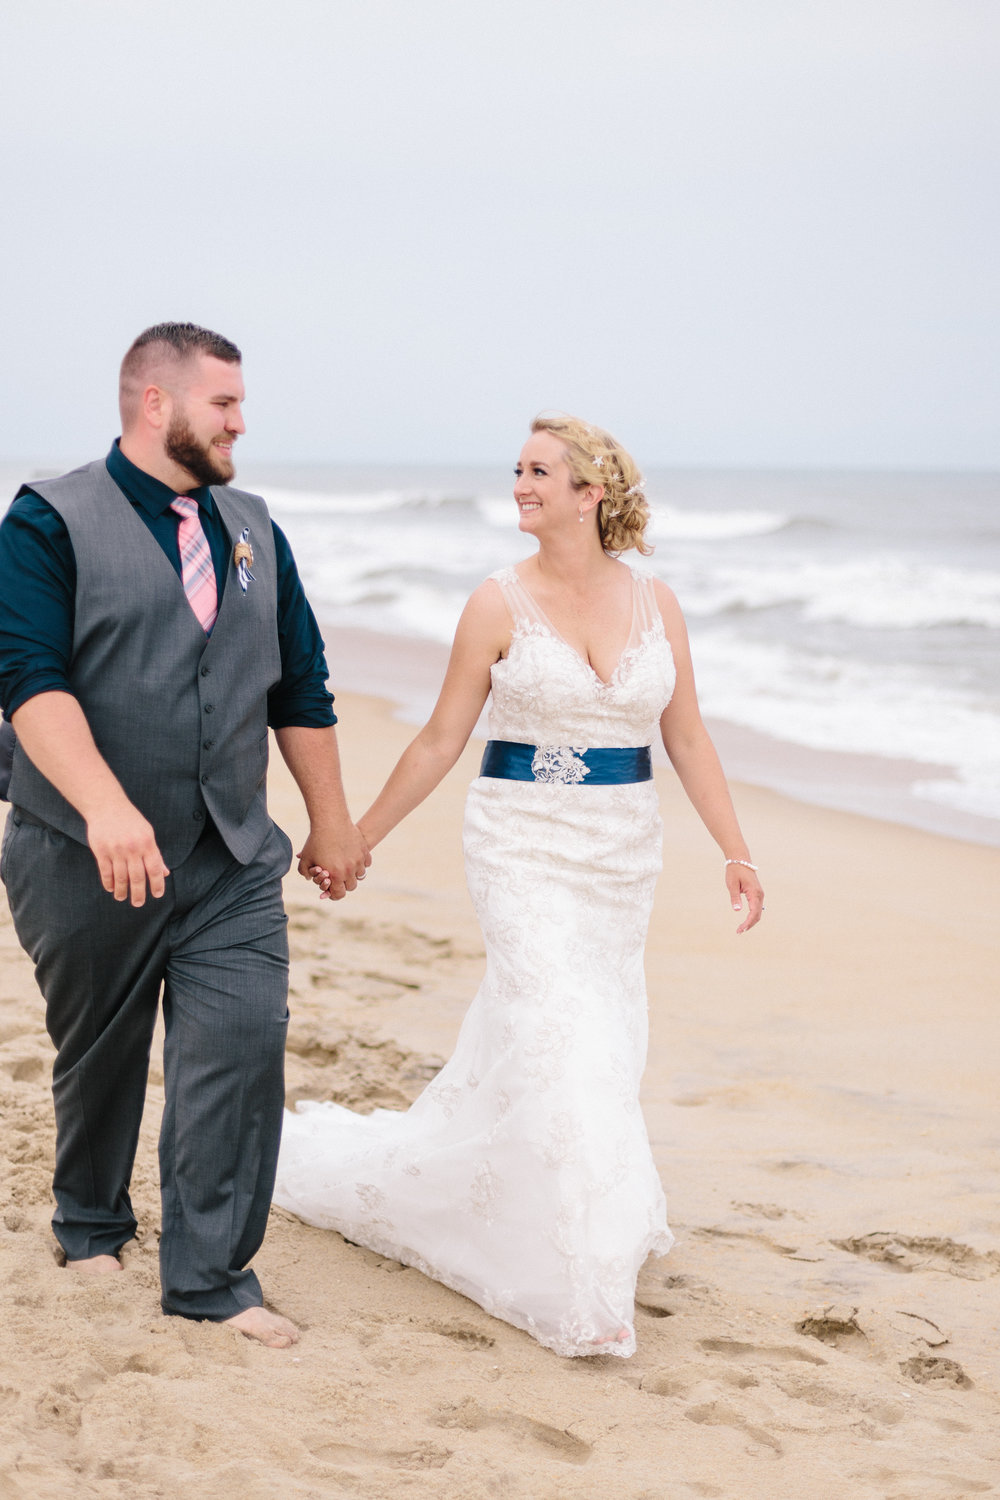 alyssa barletter photography buxton north carolina outer banks obx cape hatteras elopement intmate beach wedding-37.jpg